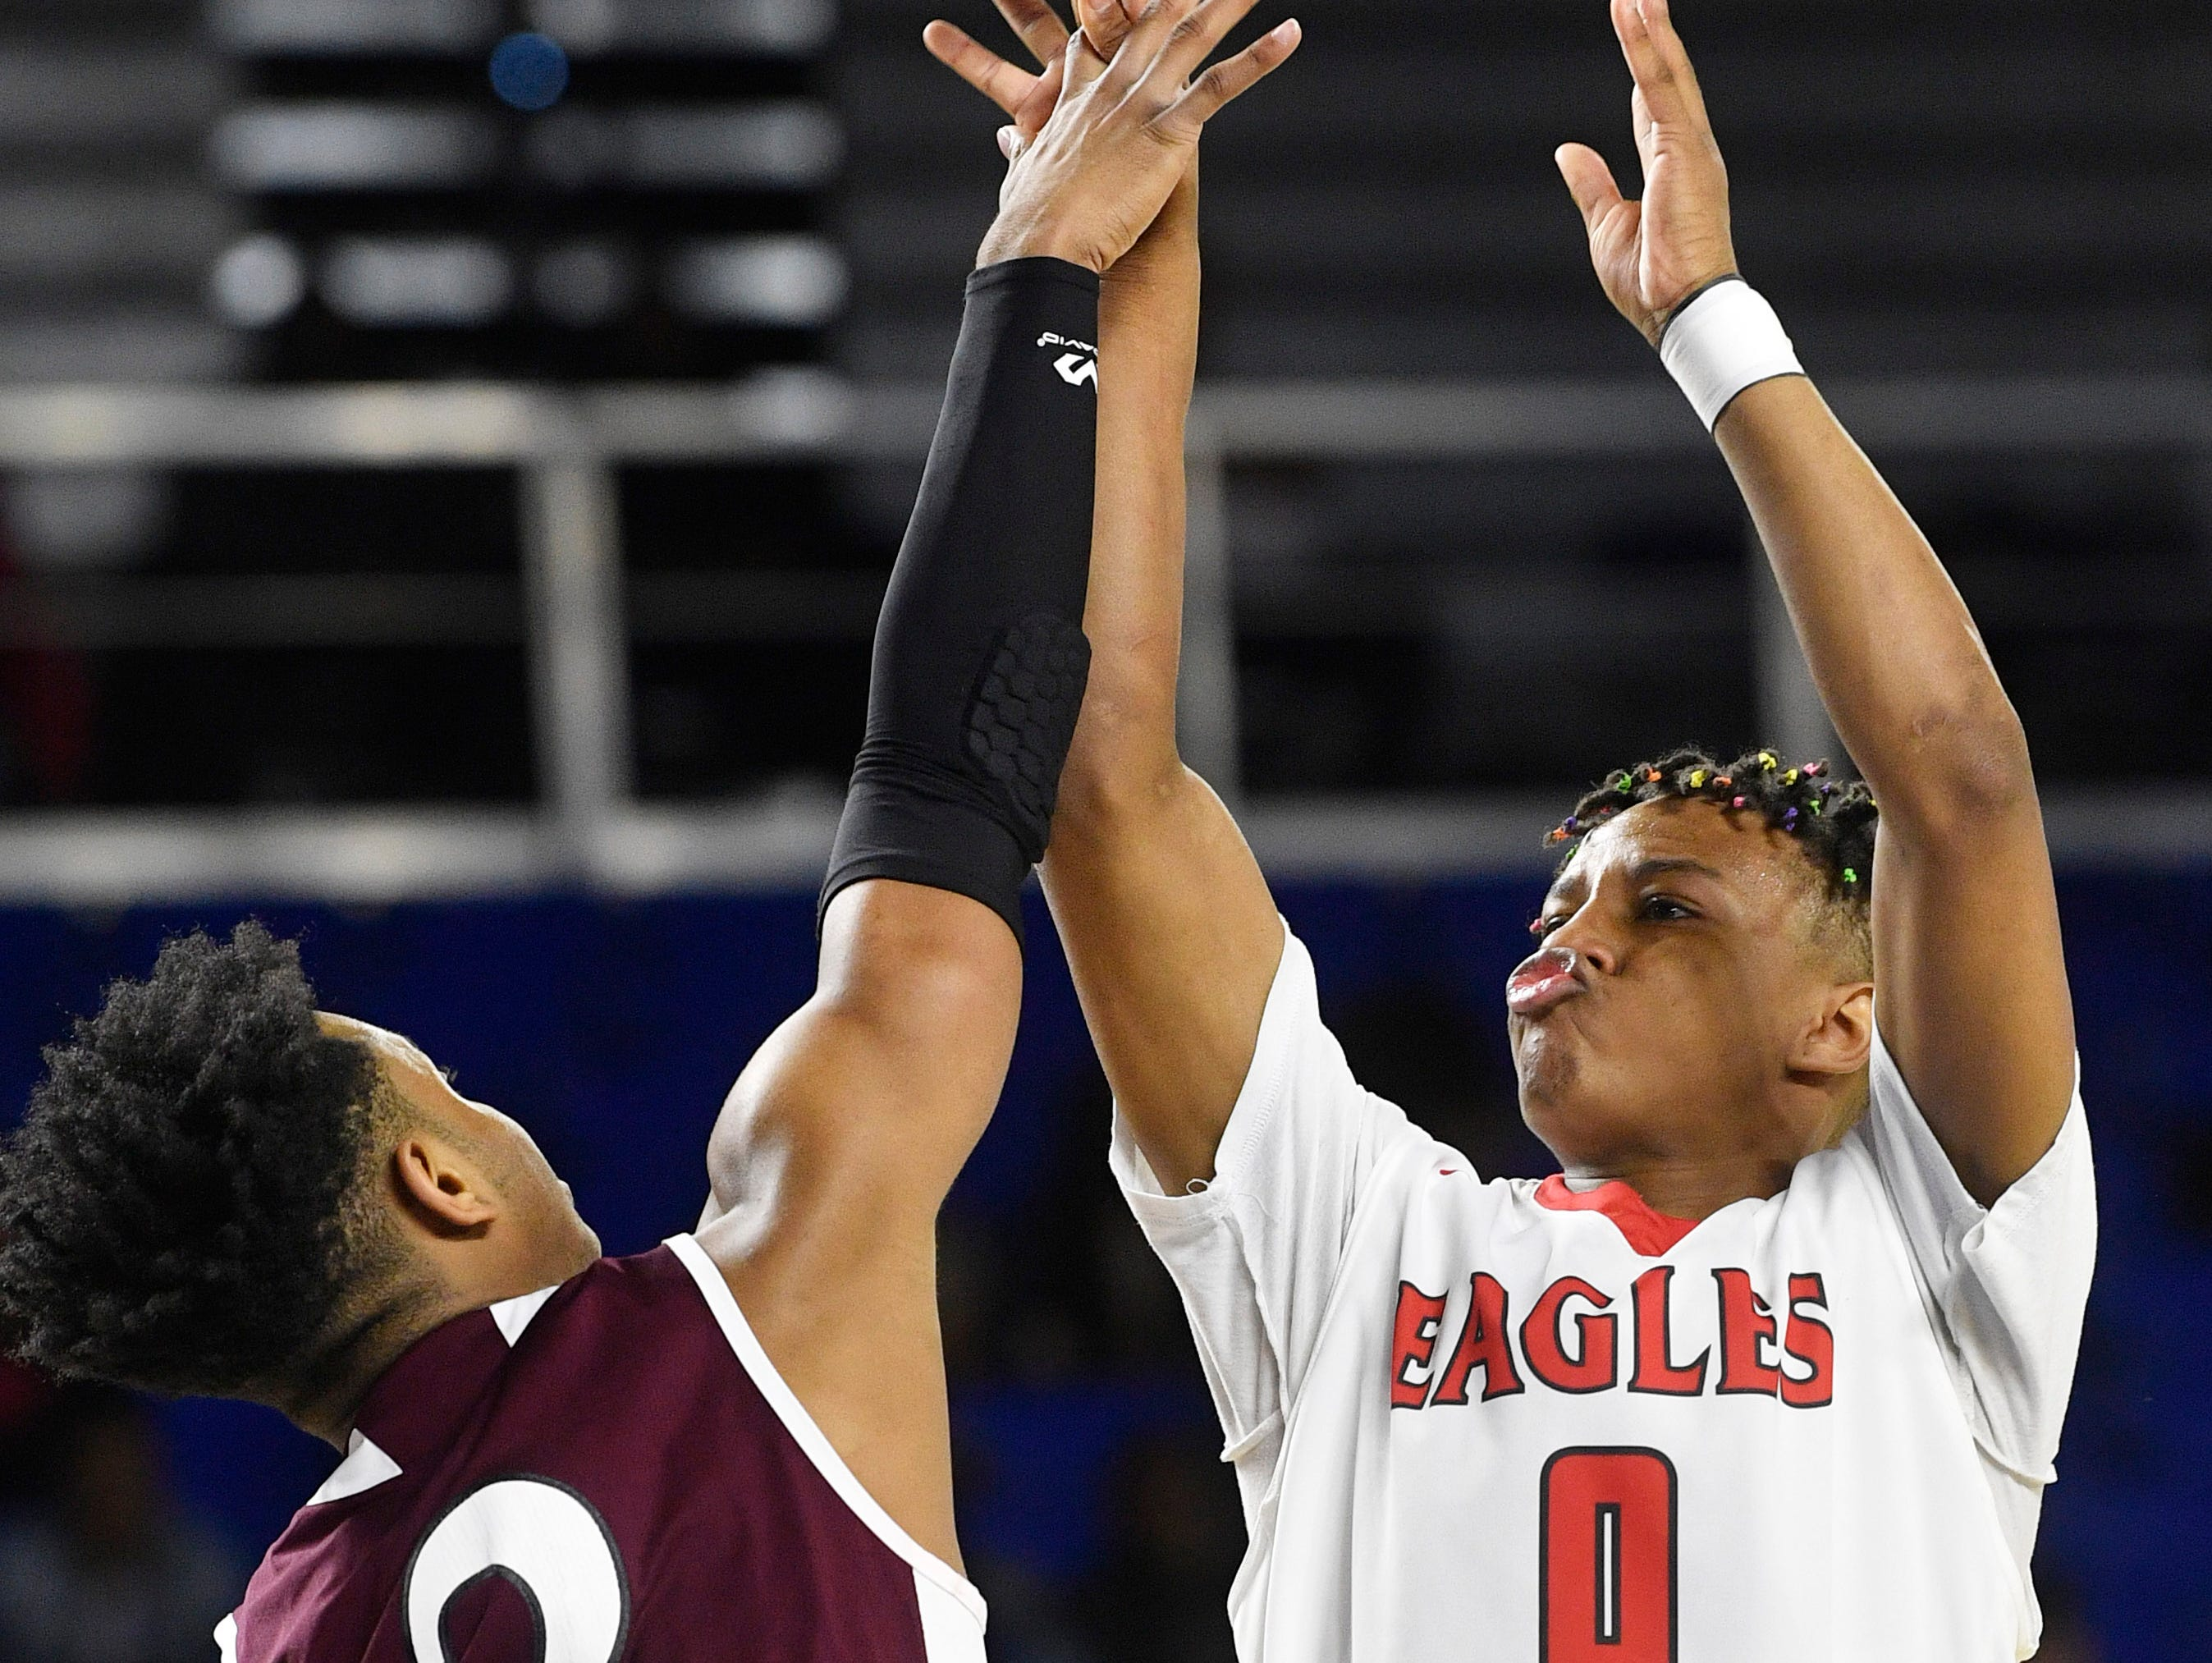 East Nashville Taras Carter (0) takes a shot as East Nashville plays Fulton in the TSSAA Class AA semifinal  Friday, March 15, 2019, in Murfreesboro, Tenn.